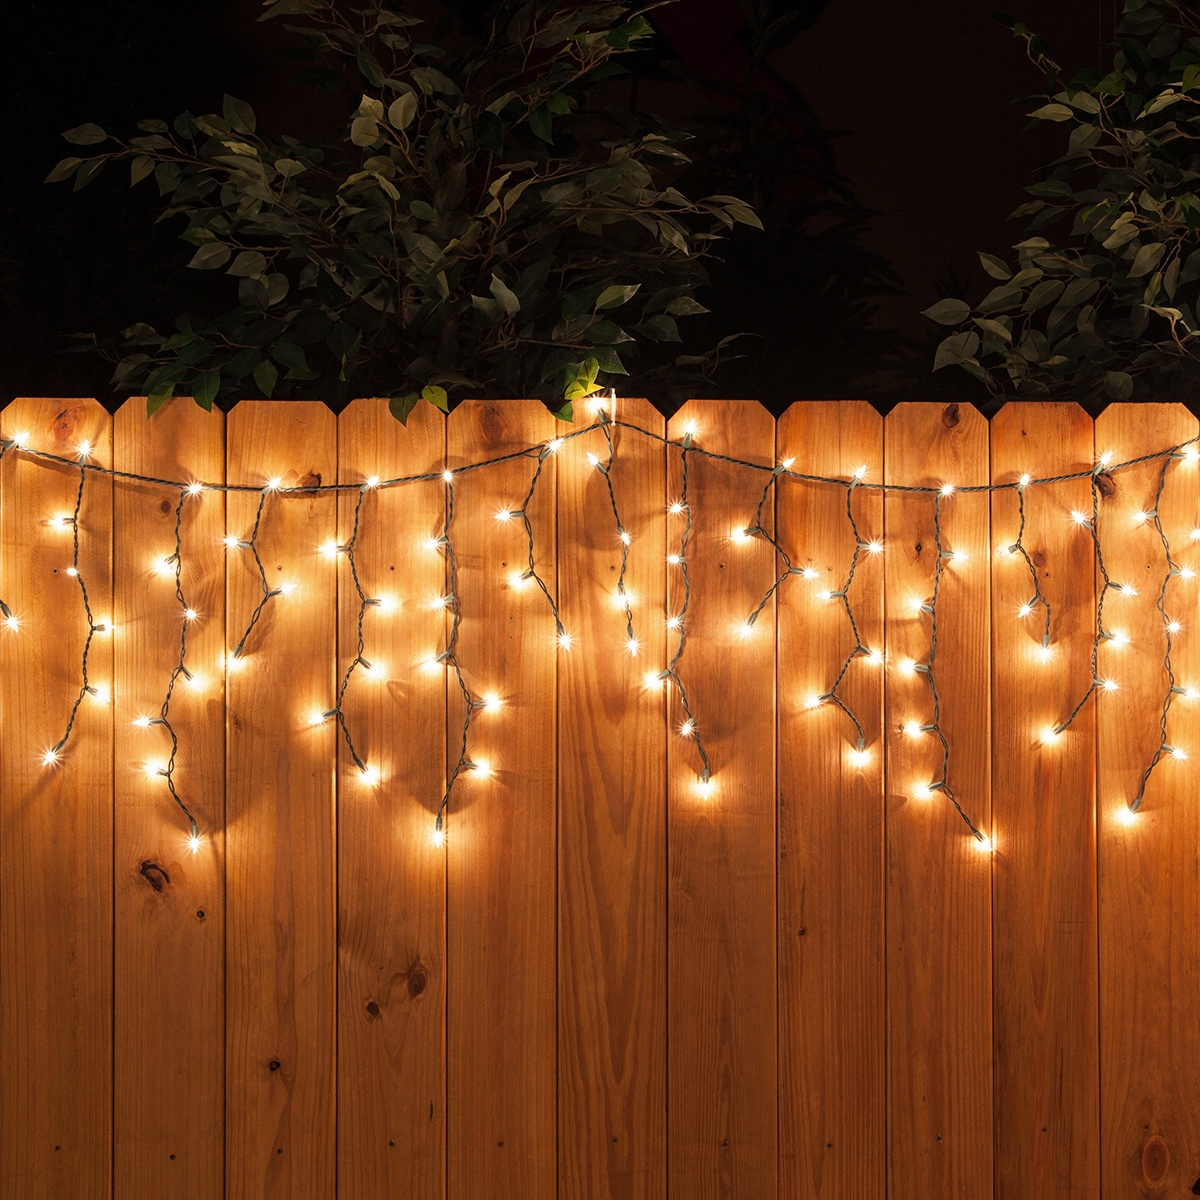 Wonderful Christmas Lights Clear Wire #2: Clear-Mini-Icicle-Lights-Green-Wire-Fence-7402.jpg